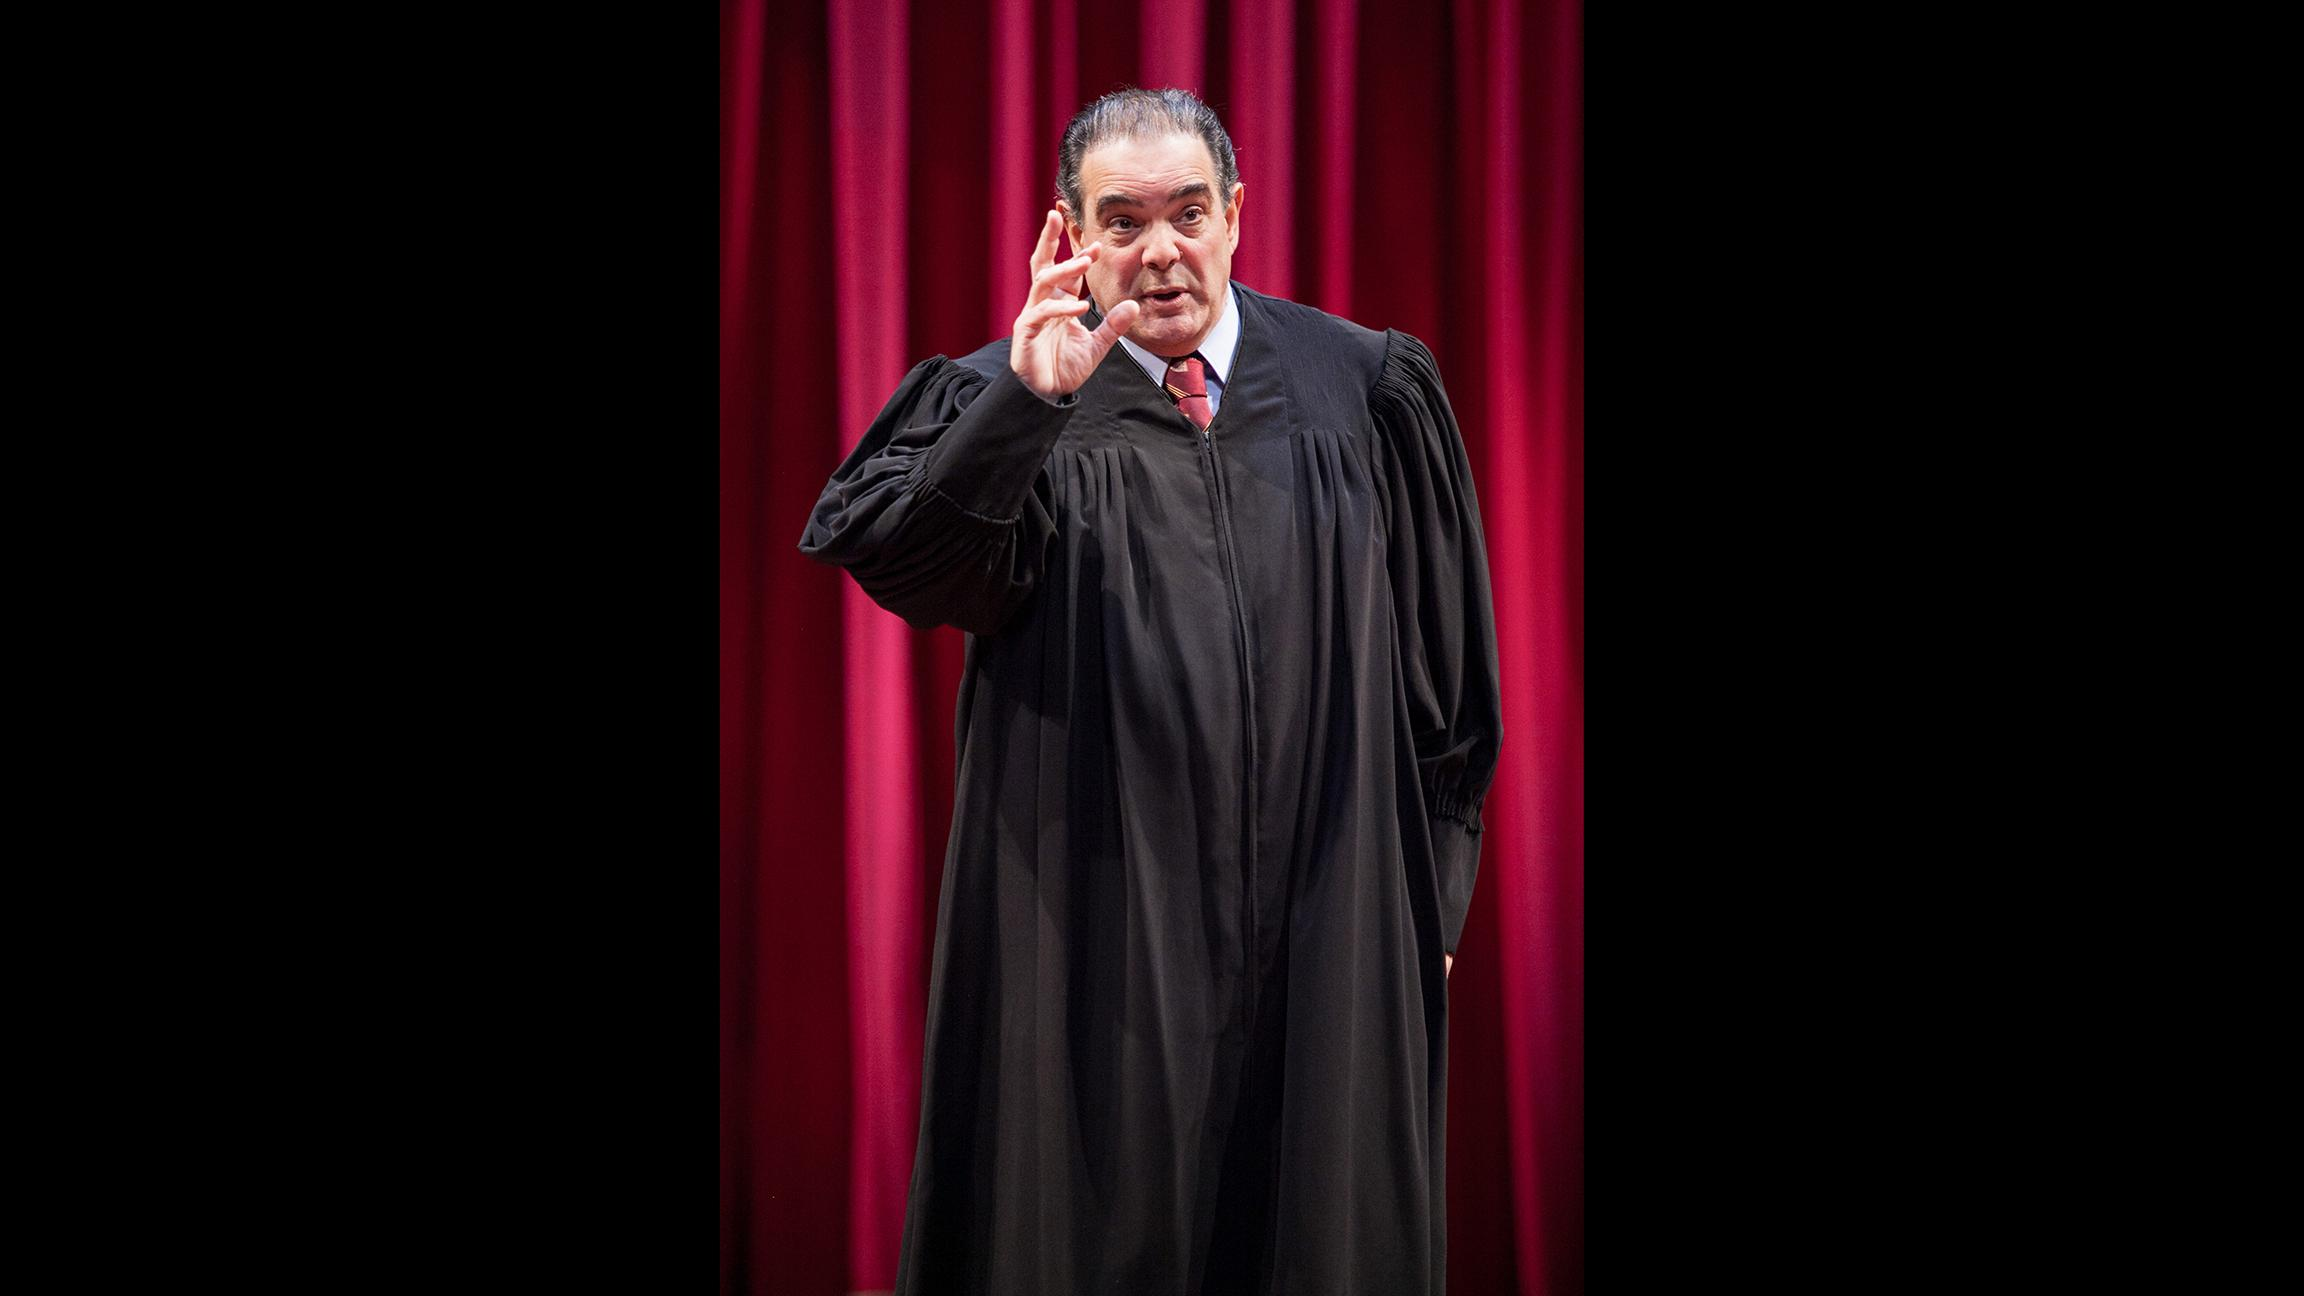 Edward Gero as Associate Justice Antonin Scalia (Photo by C Stanley Photography)